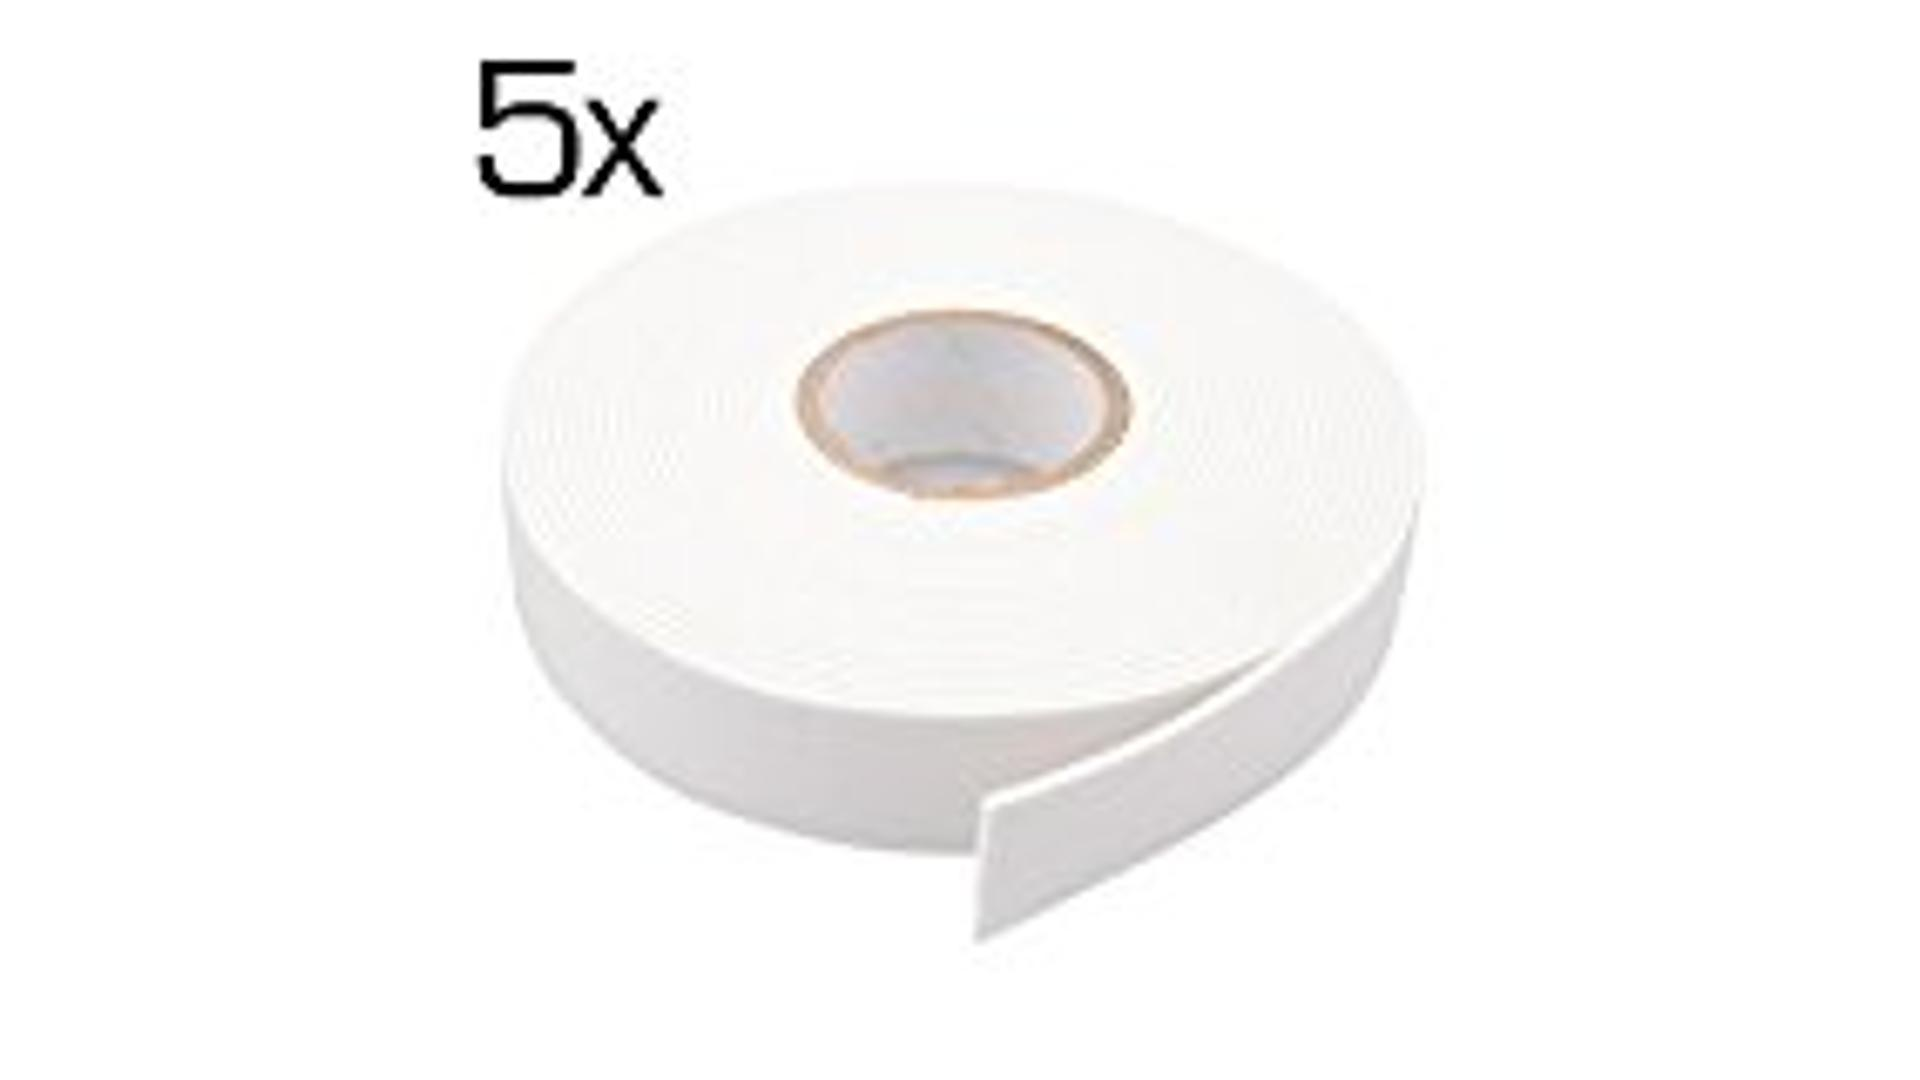 5-piece set of Double side tapes, 19mm x 5m